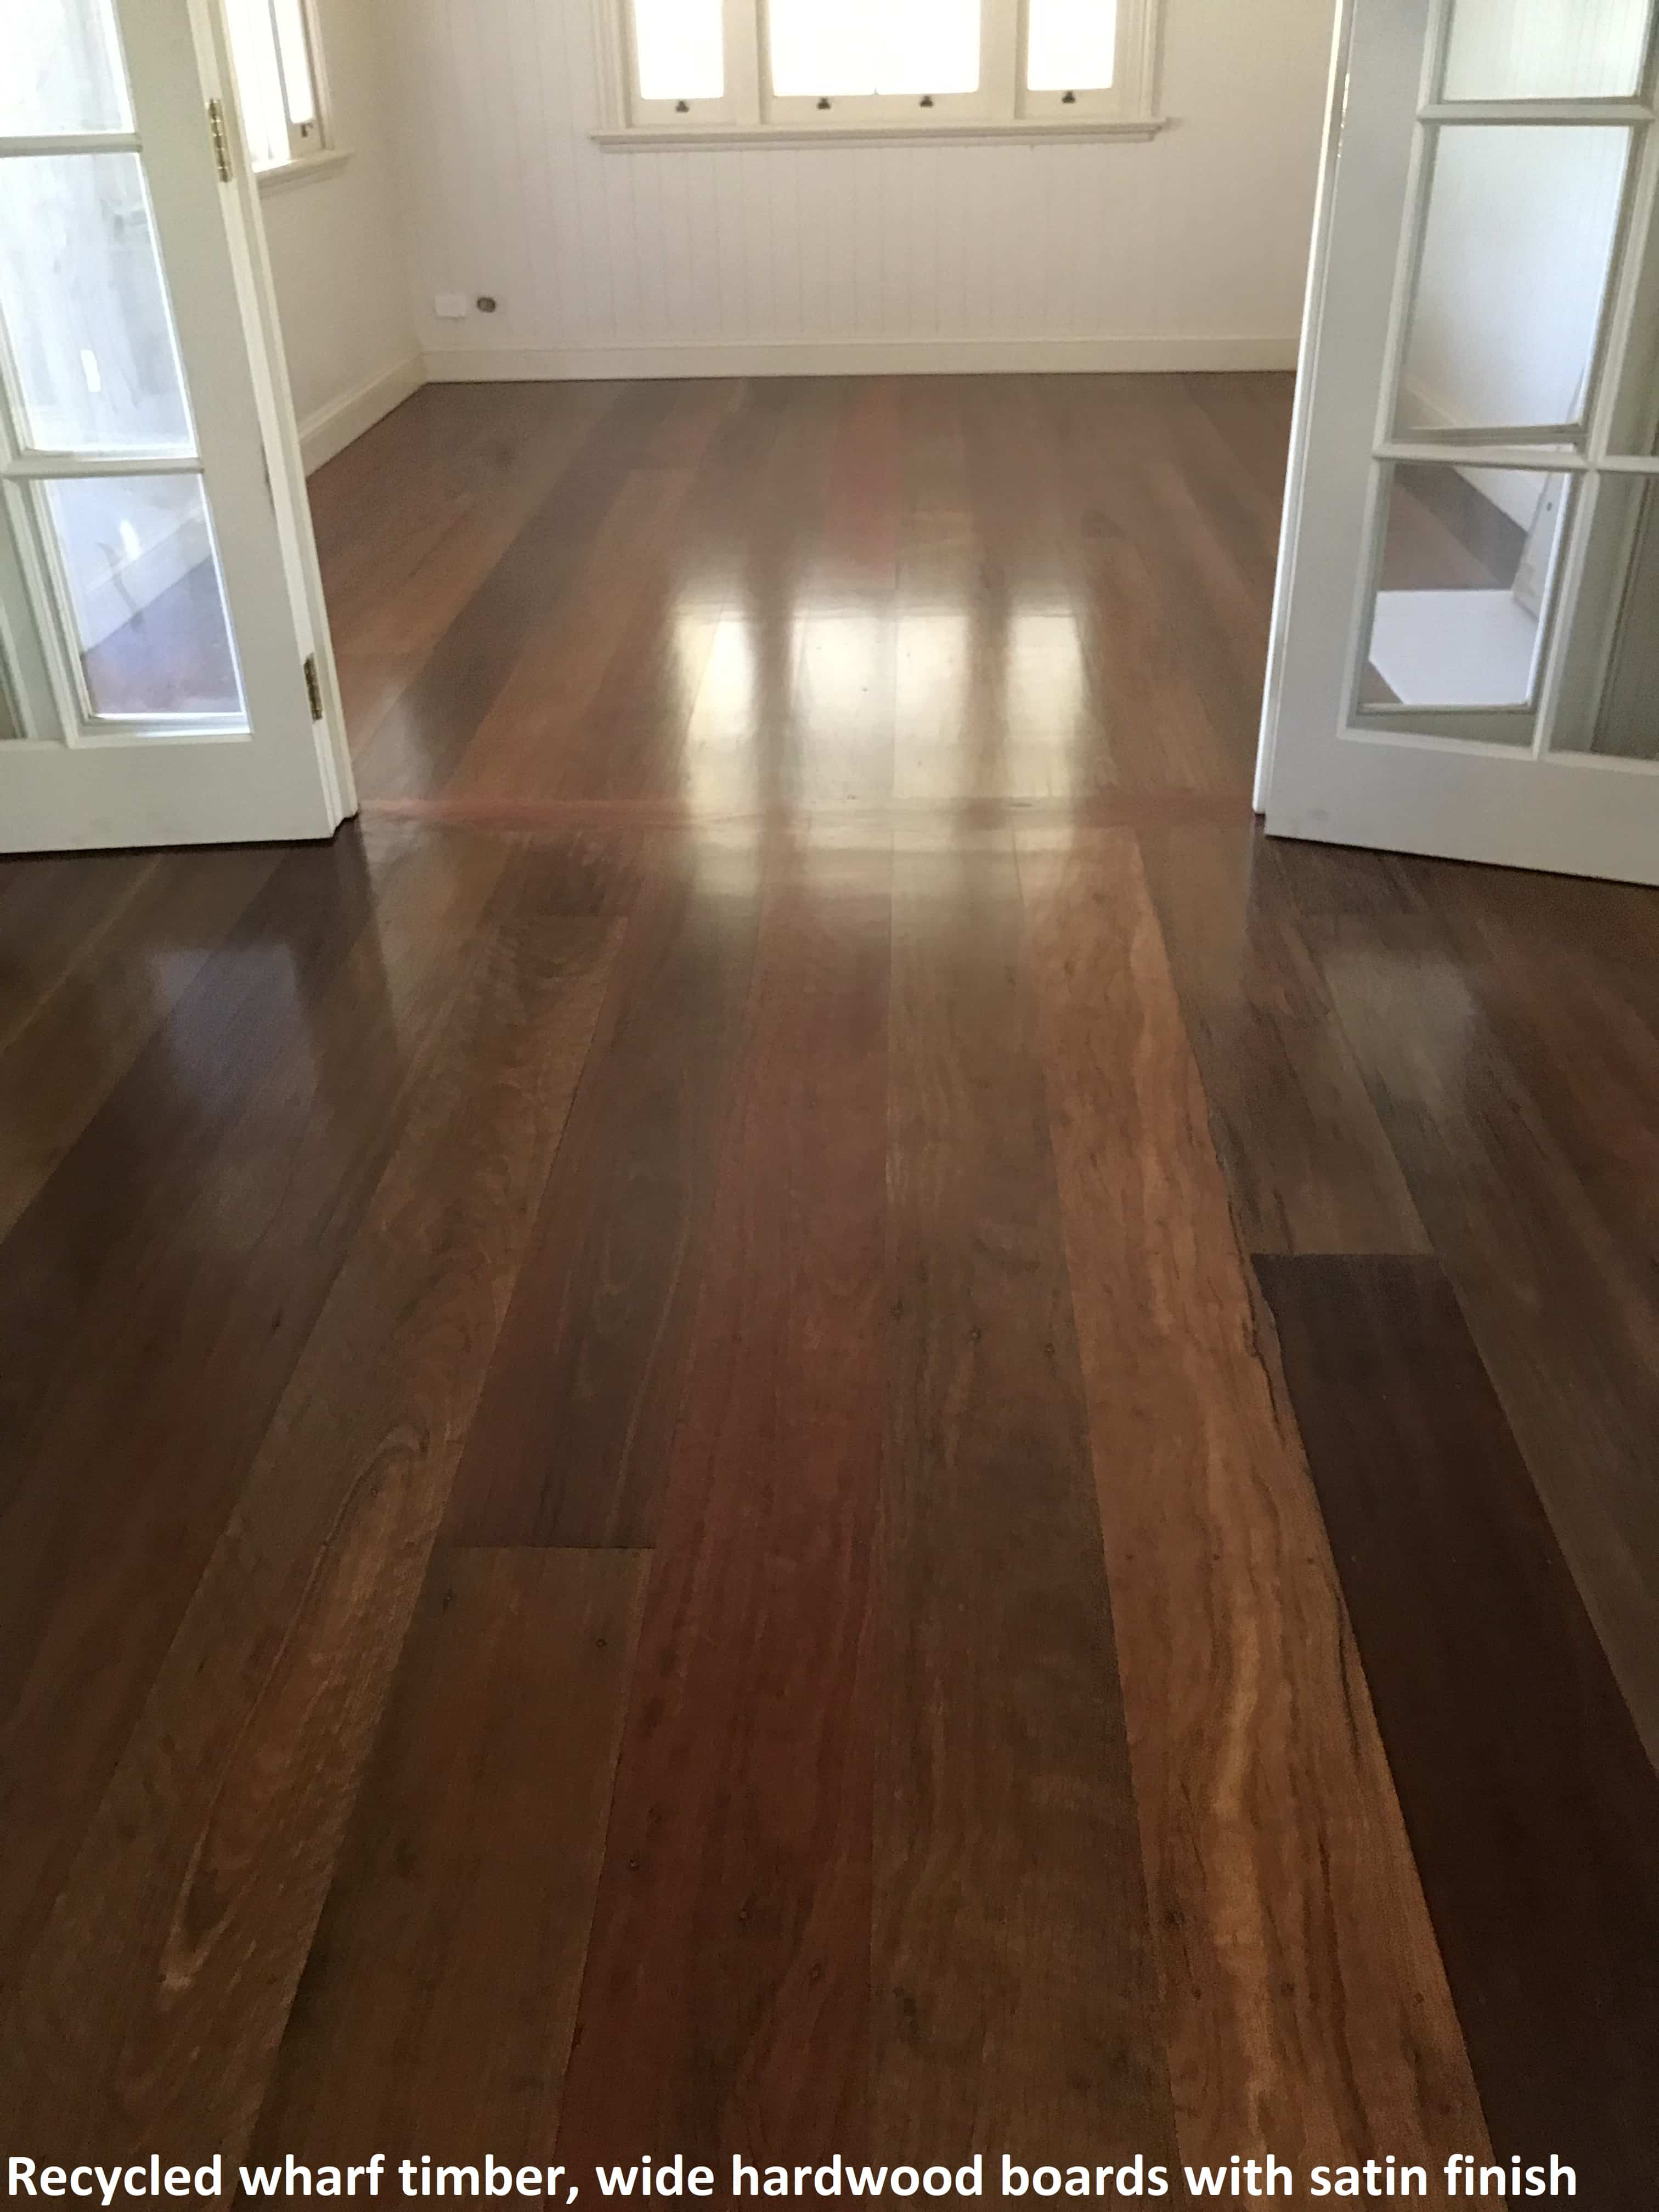 Recycled hardwood board - Brisbanes Finest Floors